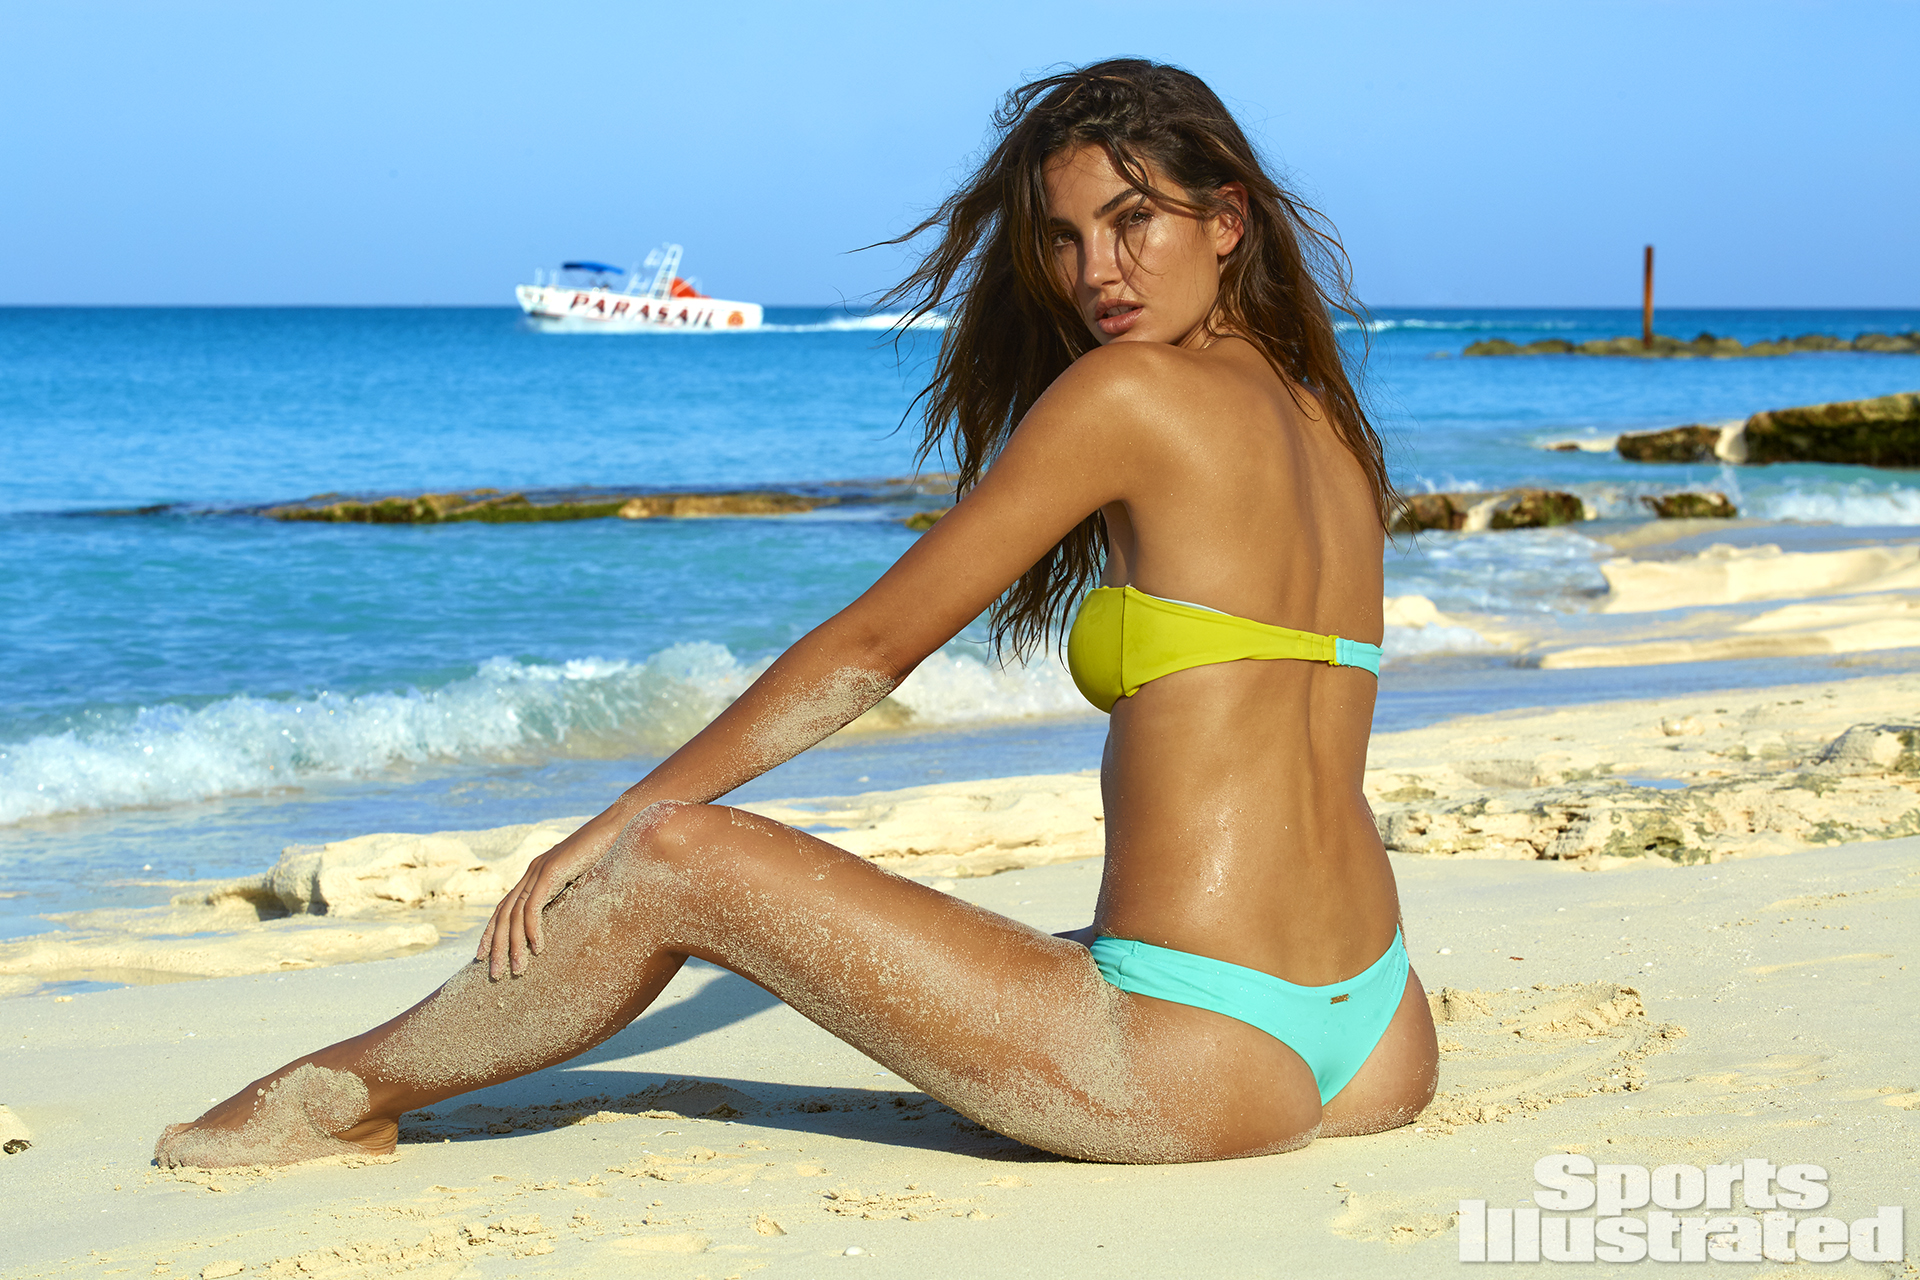 <p>Lily Aldridge was photographed by James Macari in Turks & Caicos. Swimsuit by Victoria's Secret.</p>